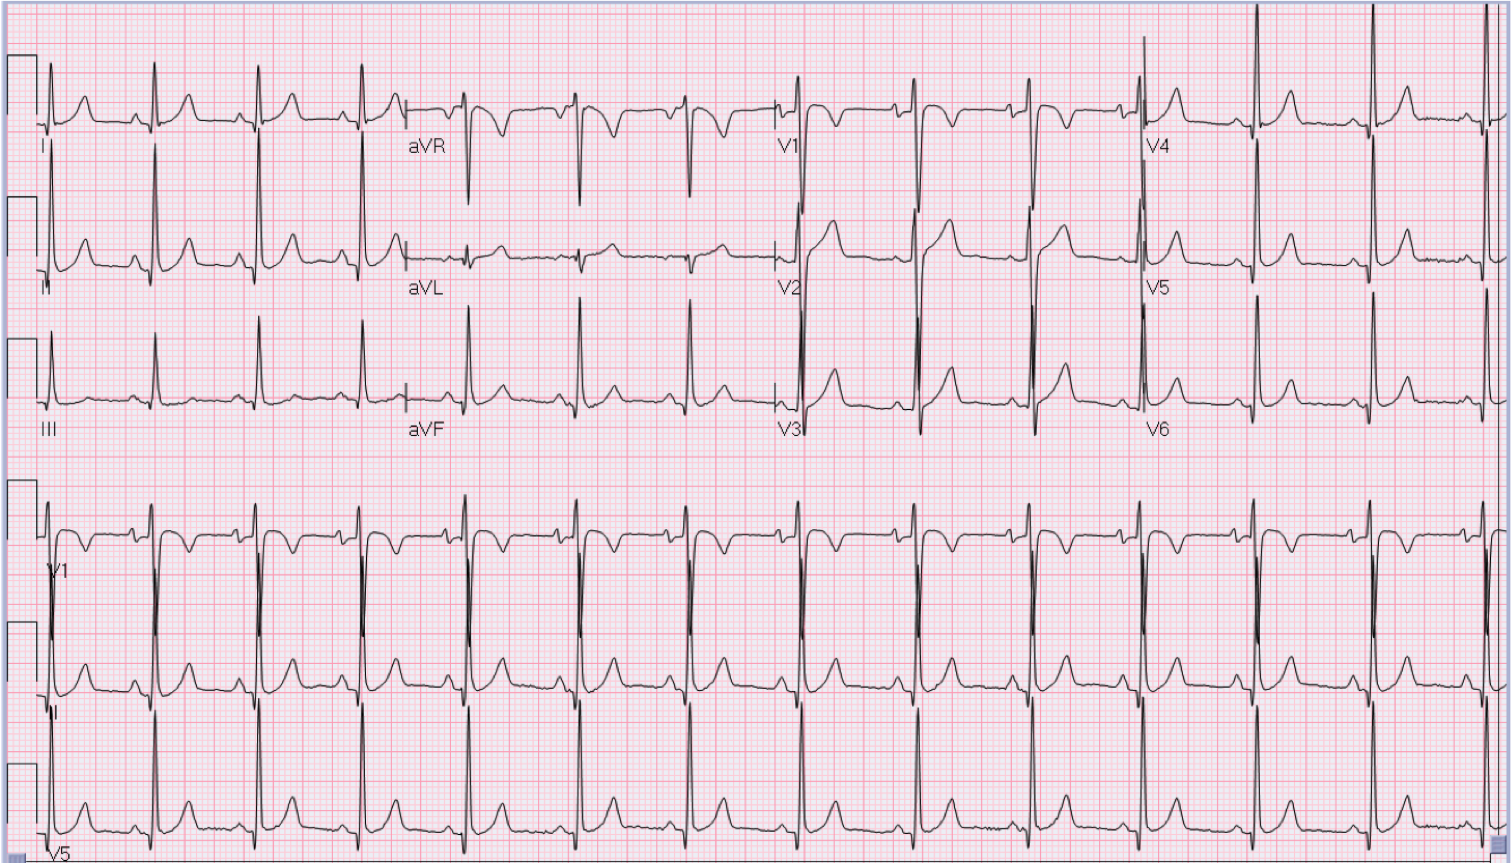 20 year old asymptomatic male.